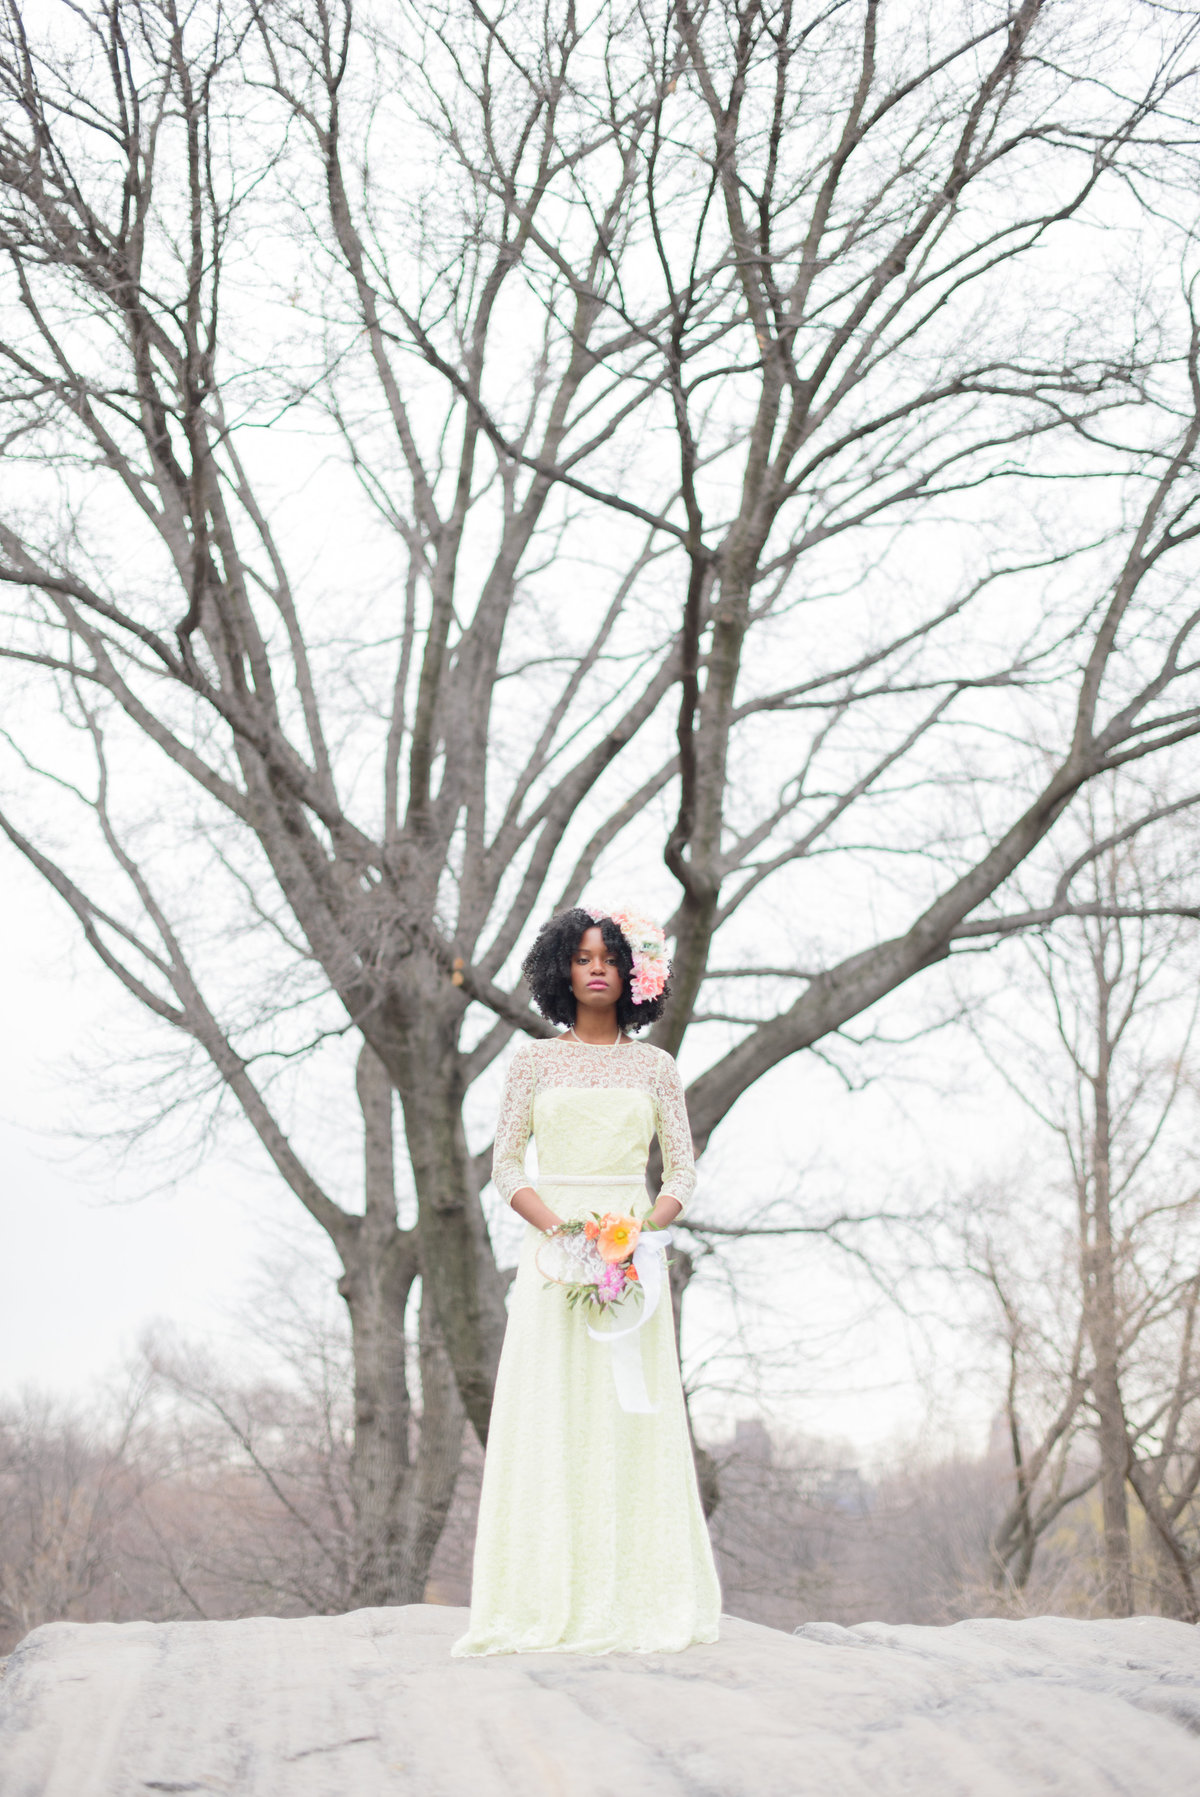 Central Park Wedding Photographer | Bridal Style Inspiration 20